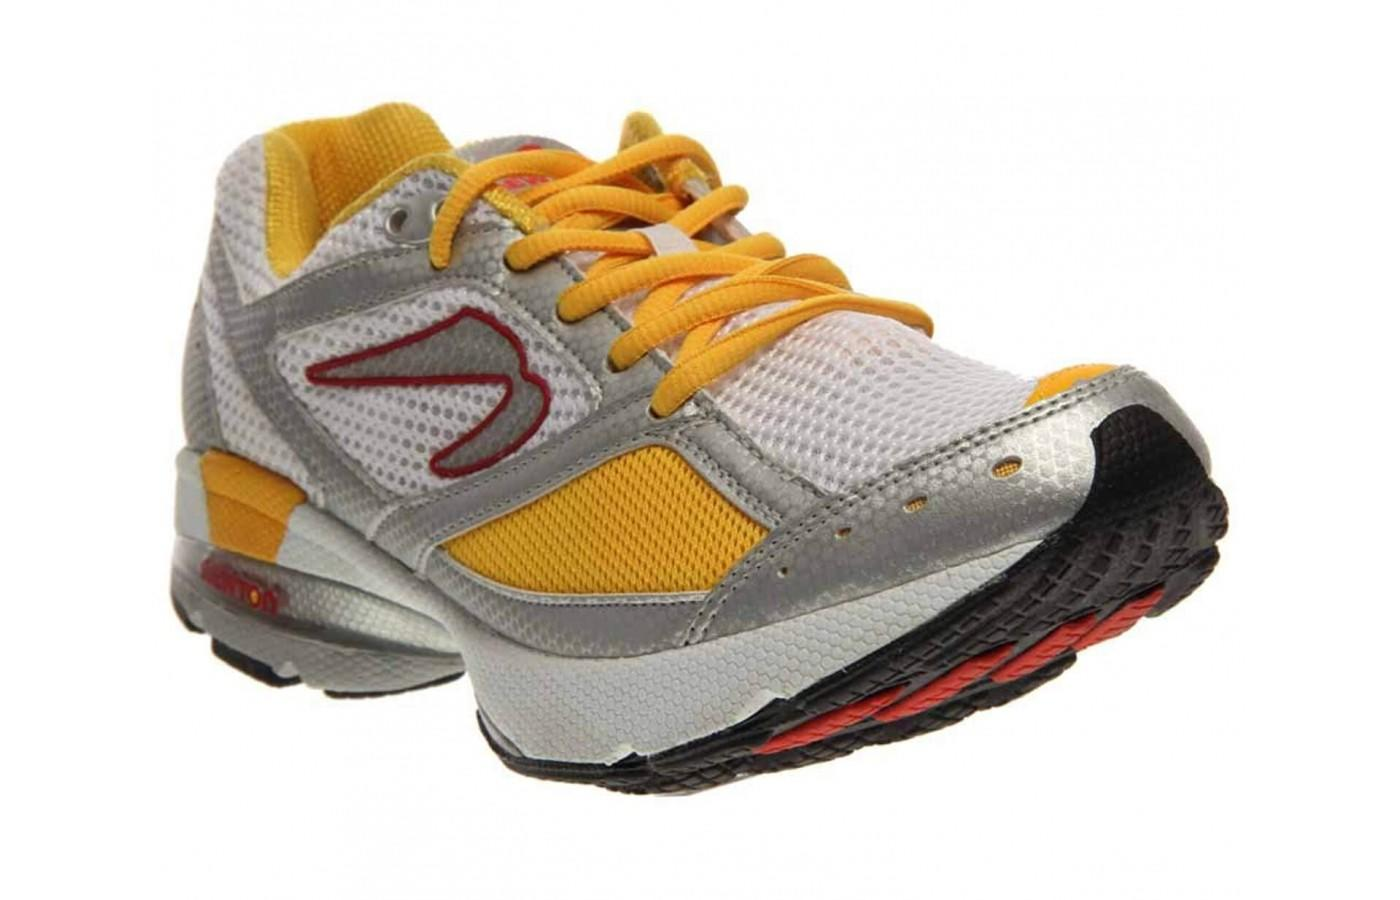 The Sir Isaac Newton is known for its responsive fit.